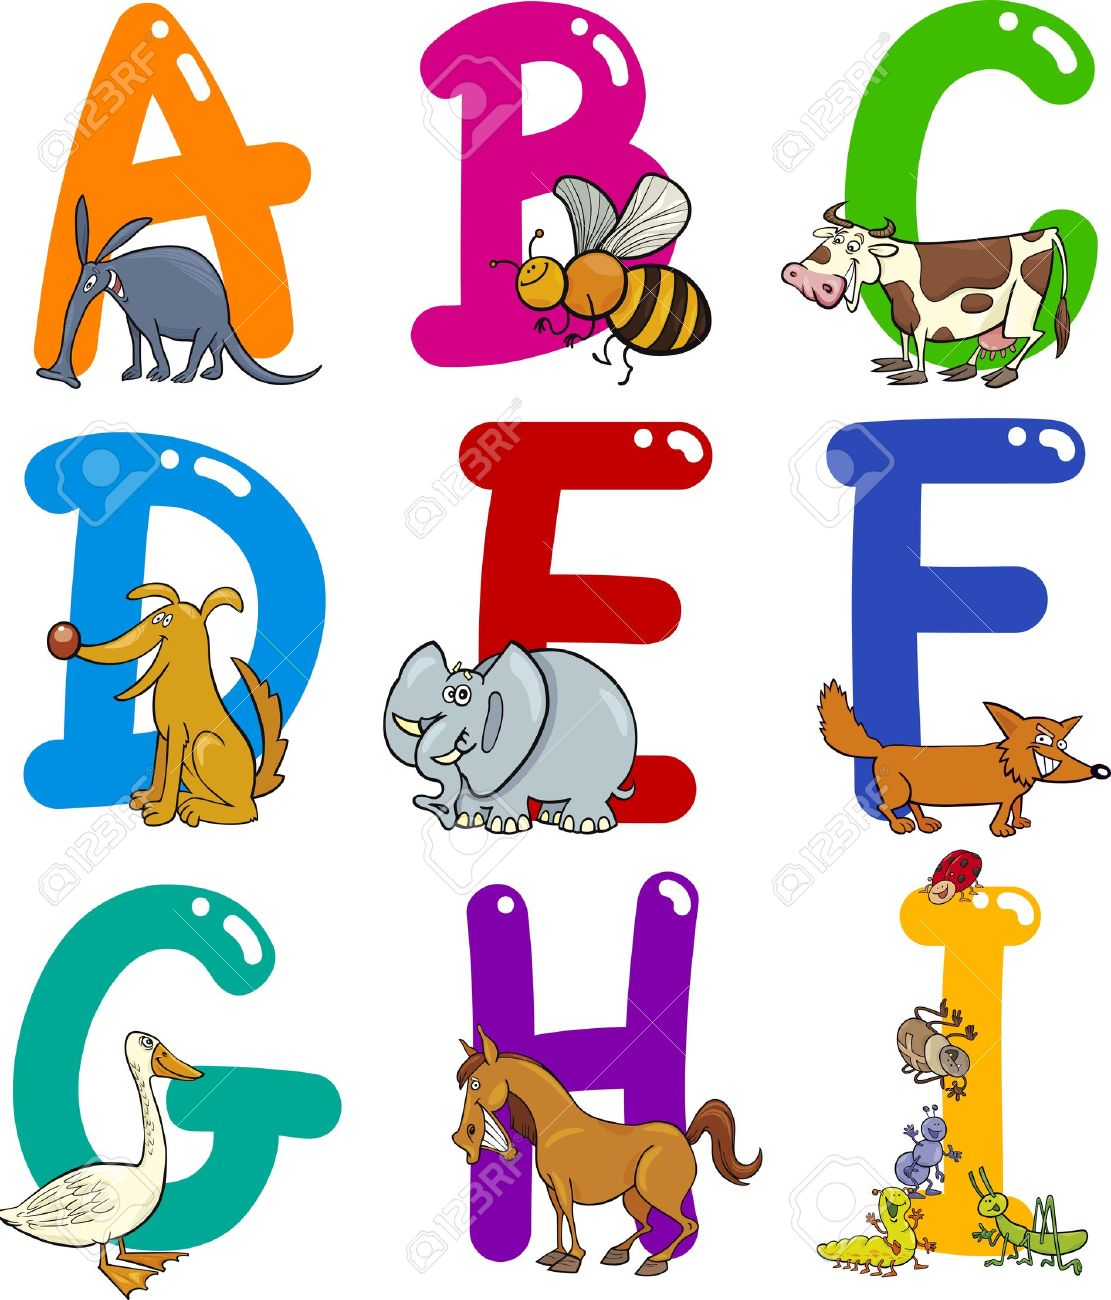 png free stock Animal letters clipart. Free download best